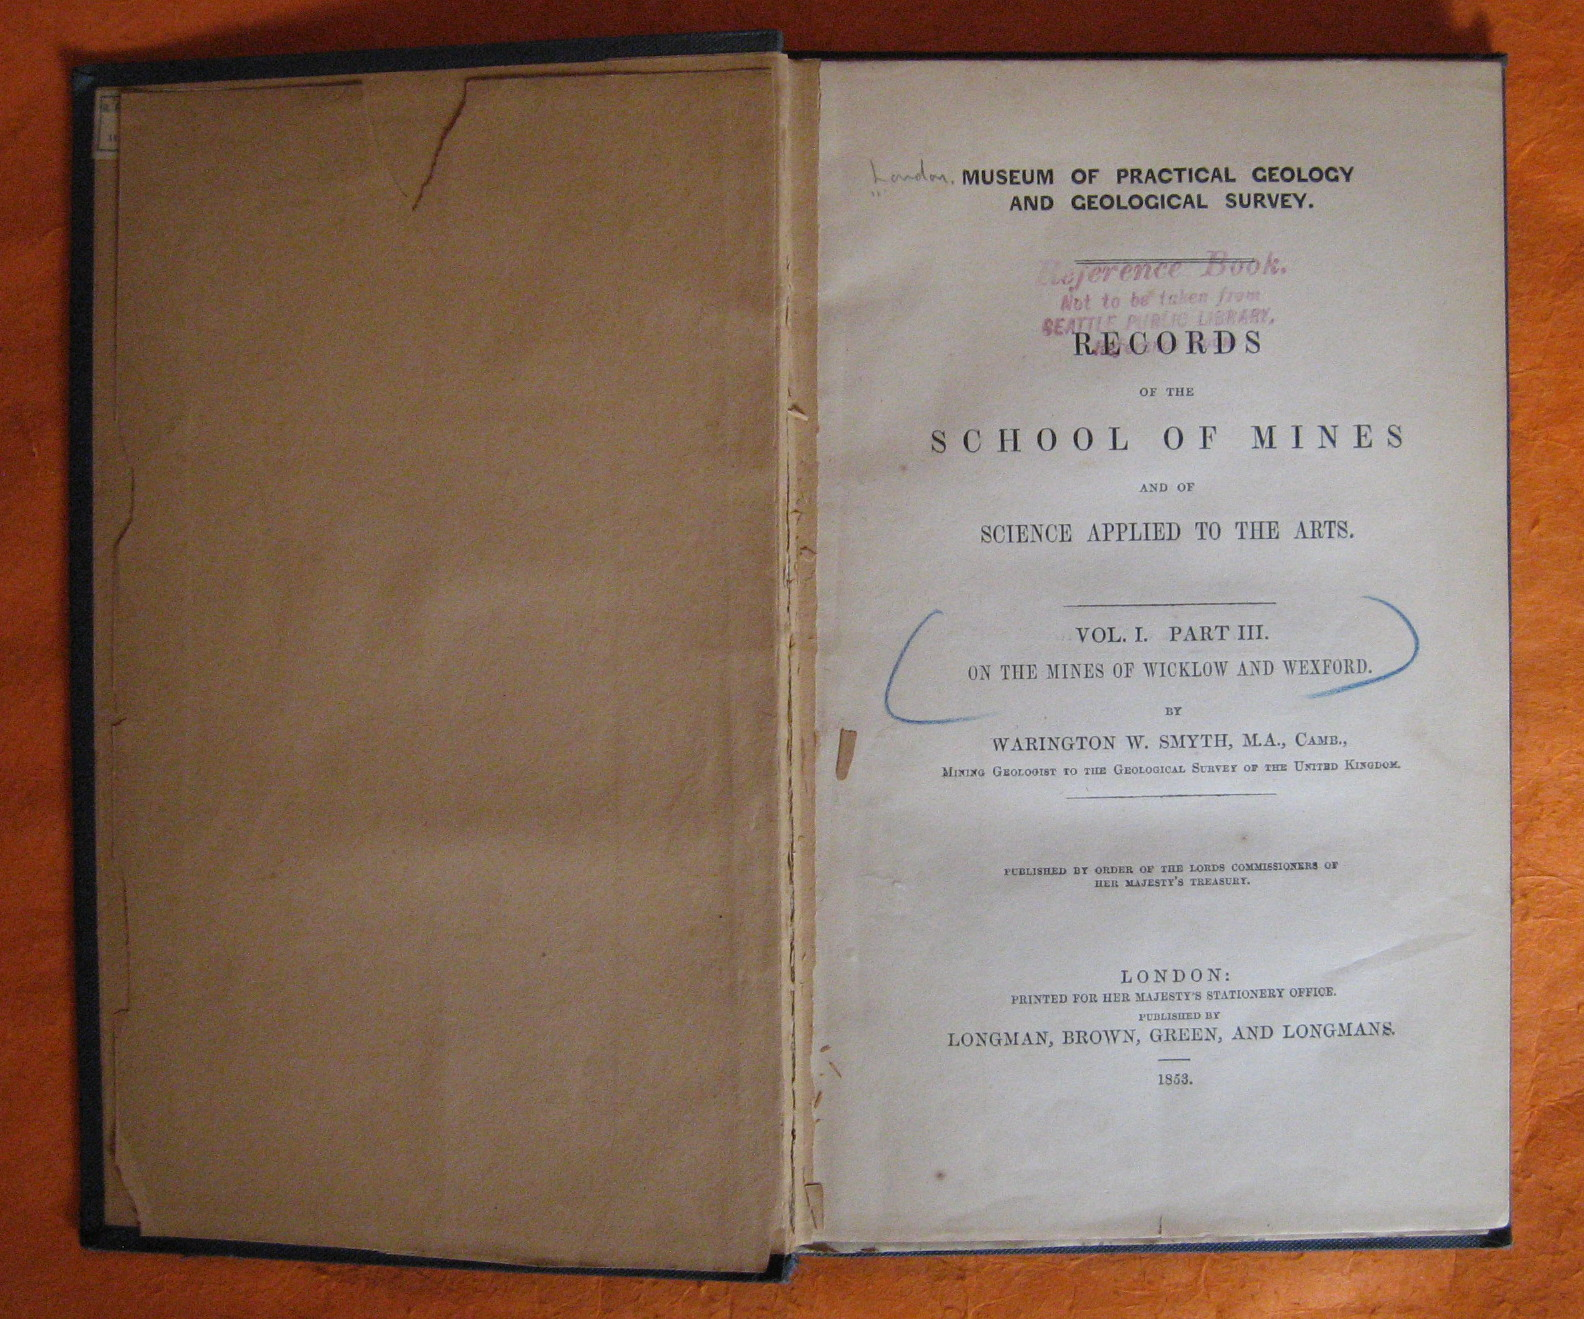 Records of the School of Mines and of Science Applied to the Arts (Vol. I. Part III.  On the Mines of Wicklow and Wexford), Smyth, Warington W.